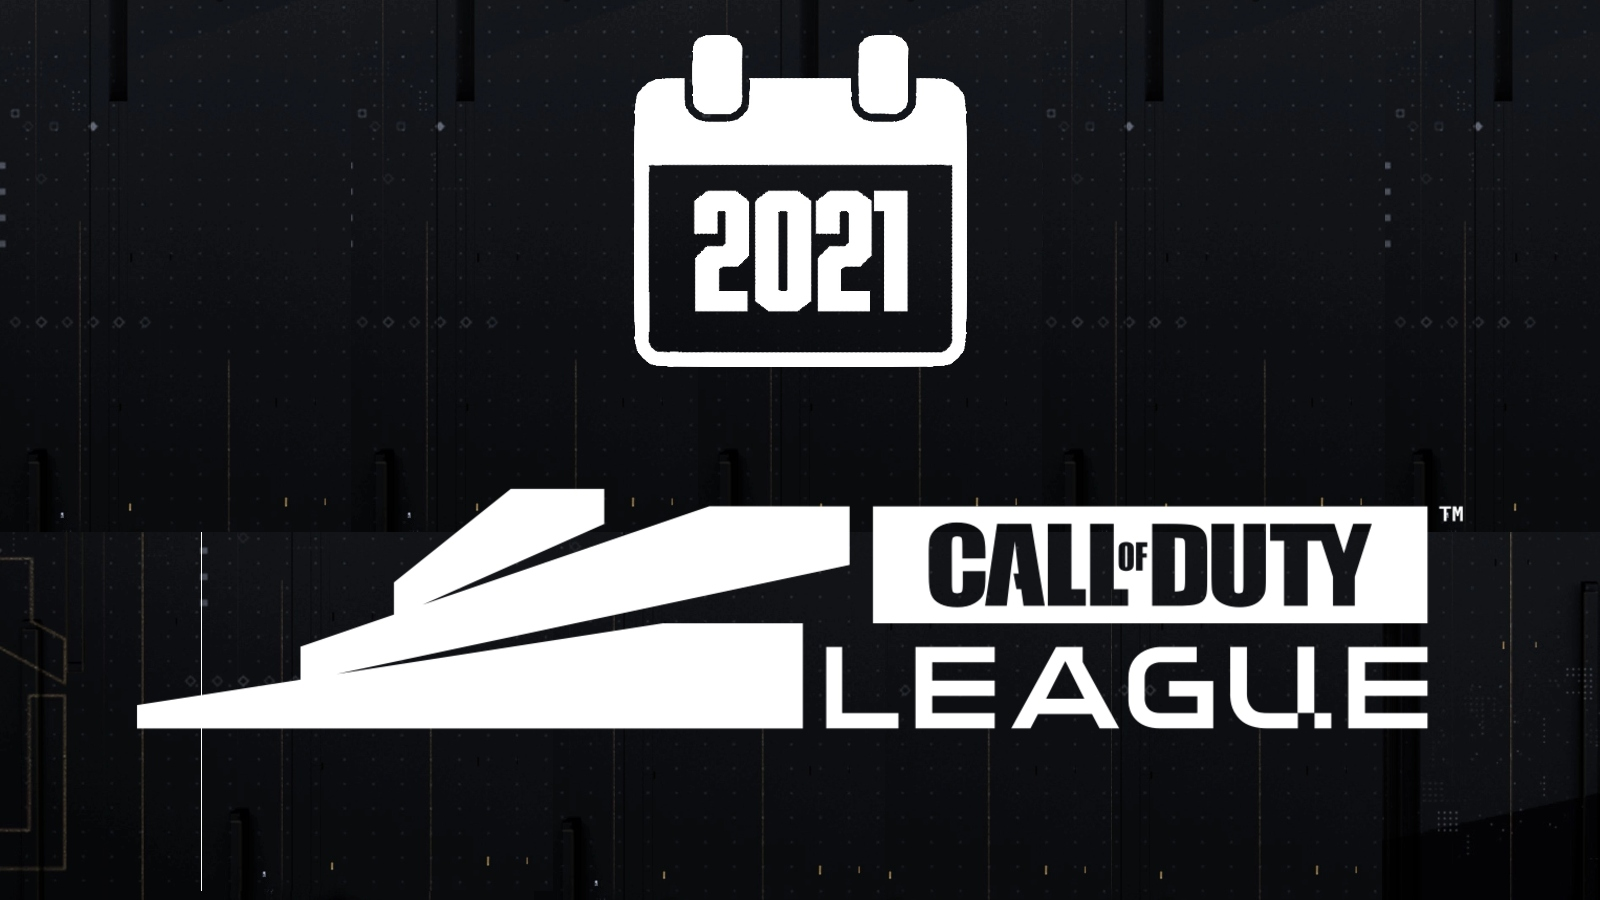 Call of Duty League 2021 dates